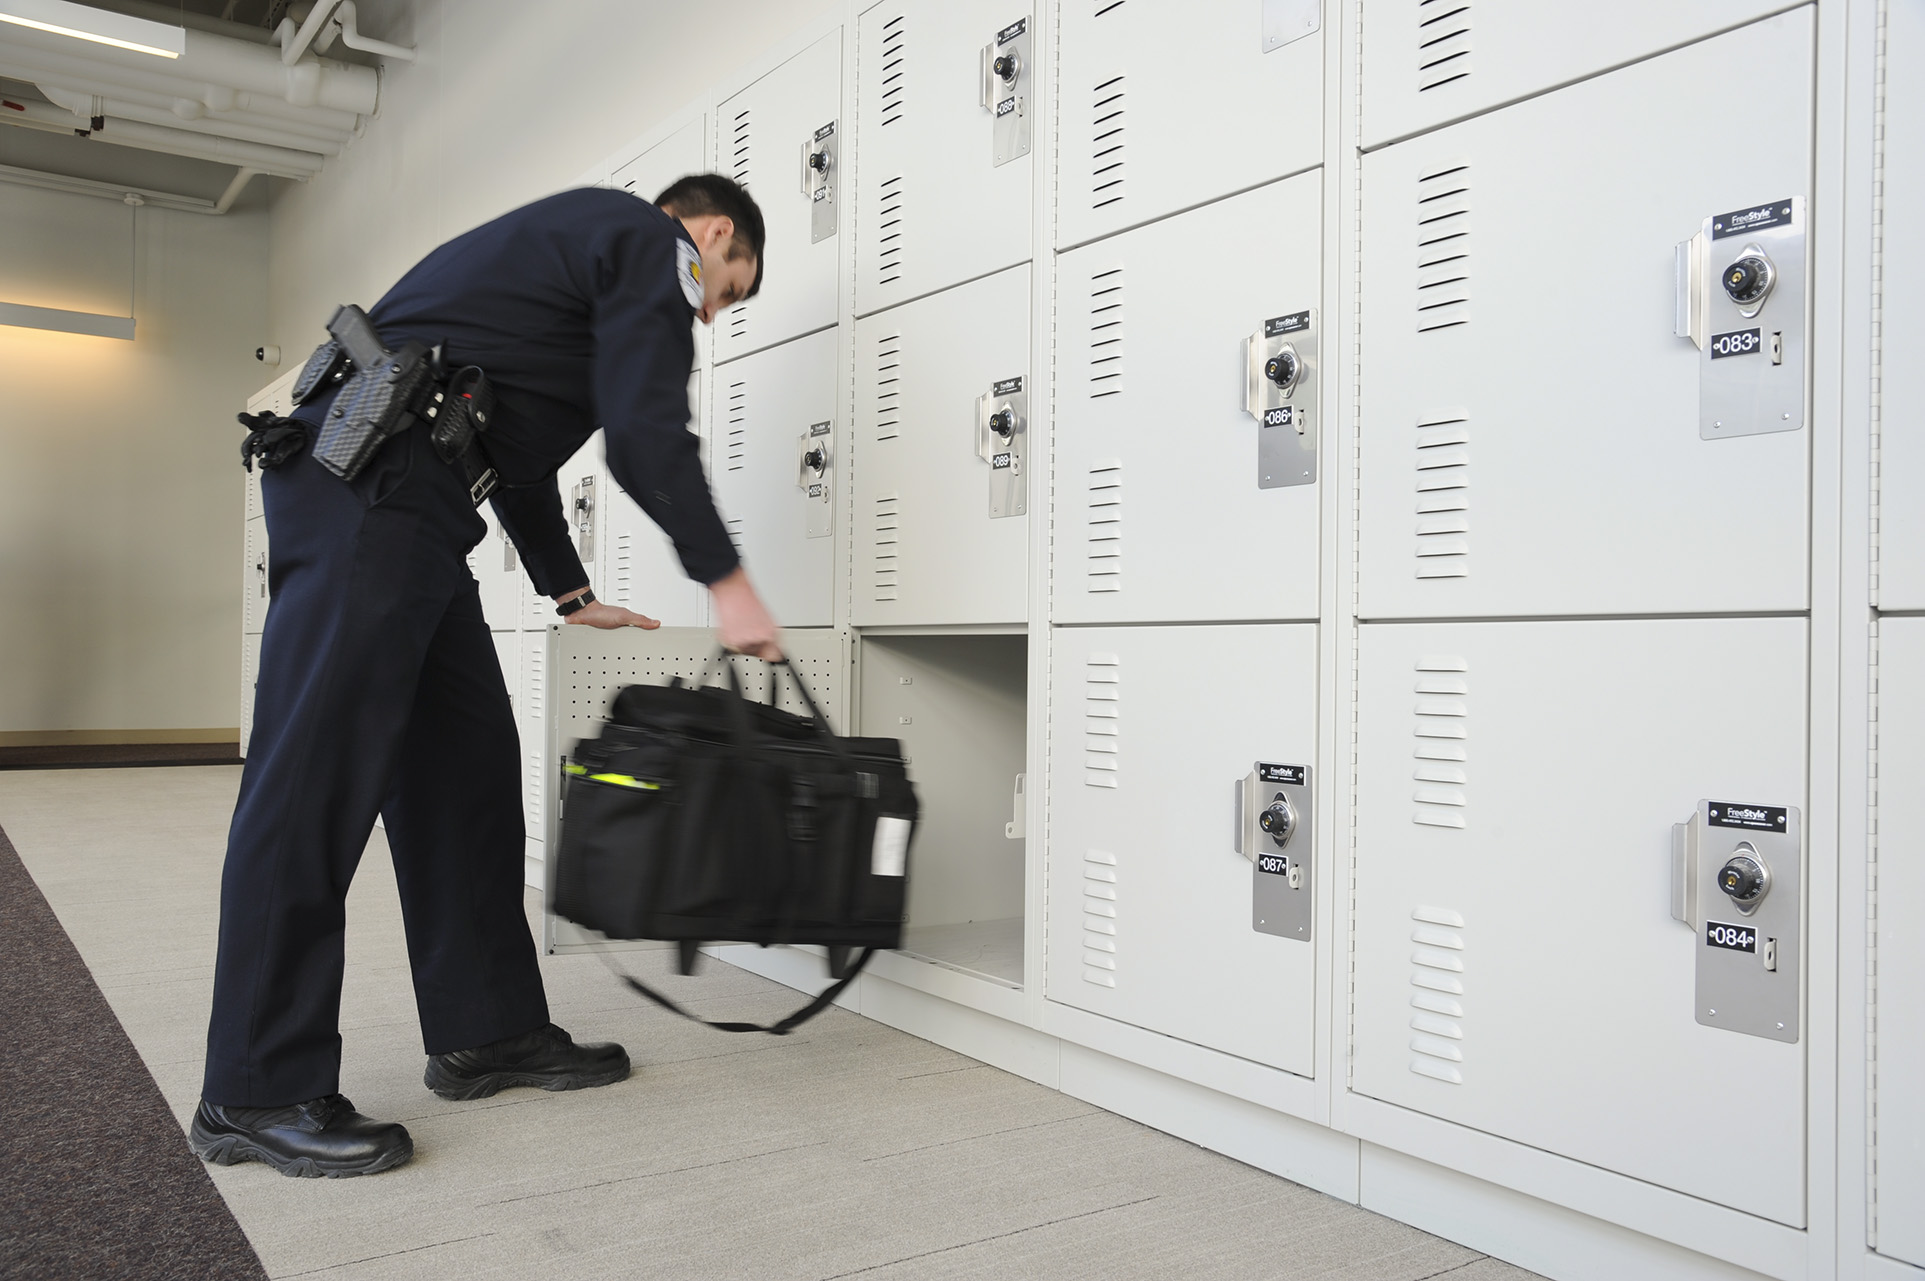 Personal storage lockers with combination lock for security